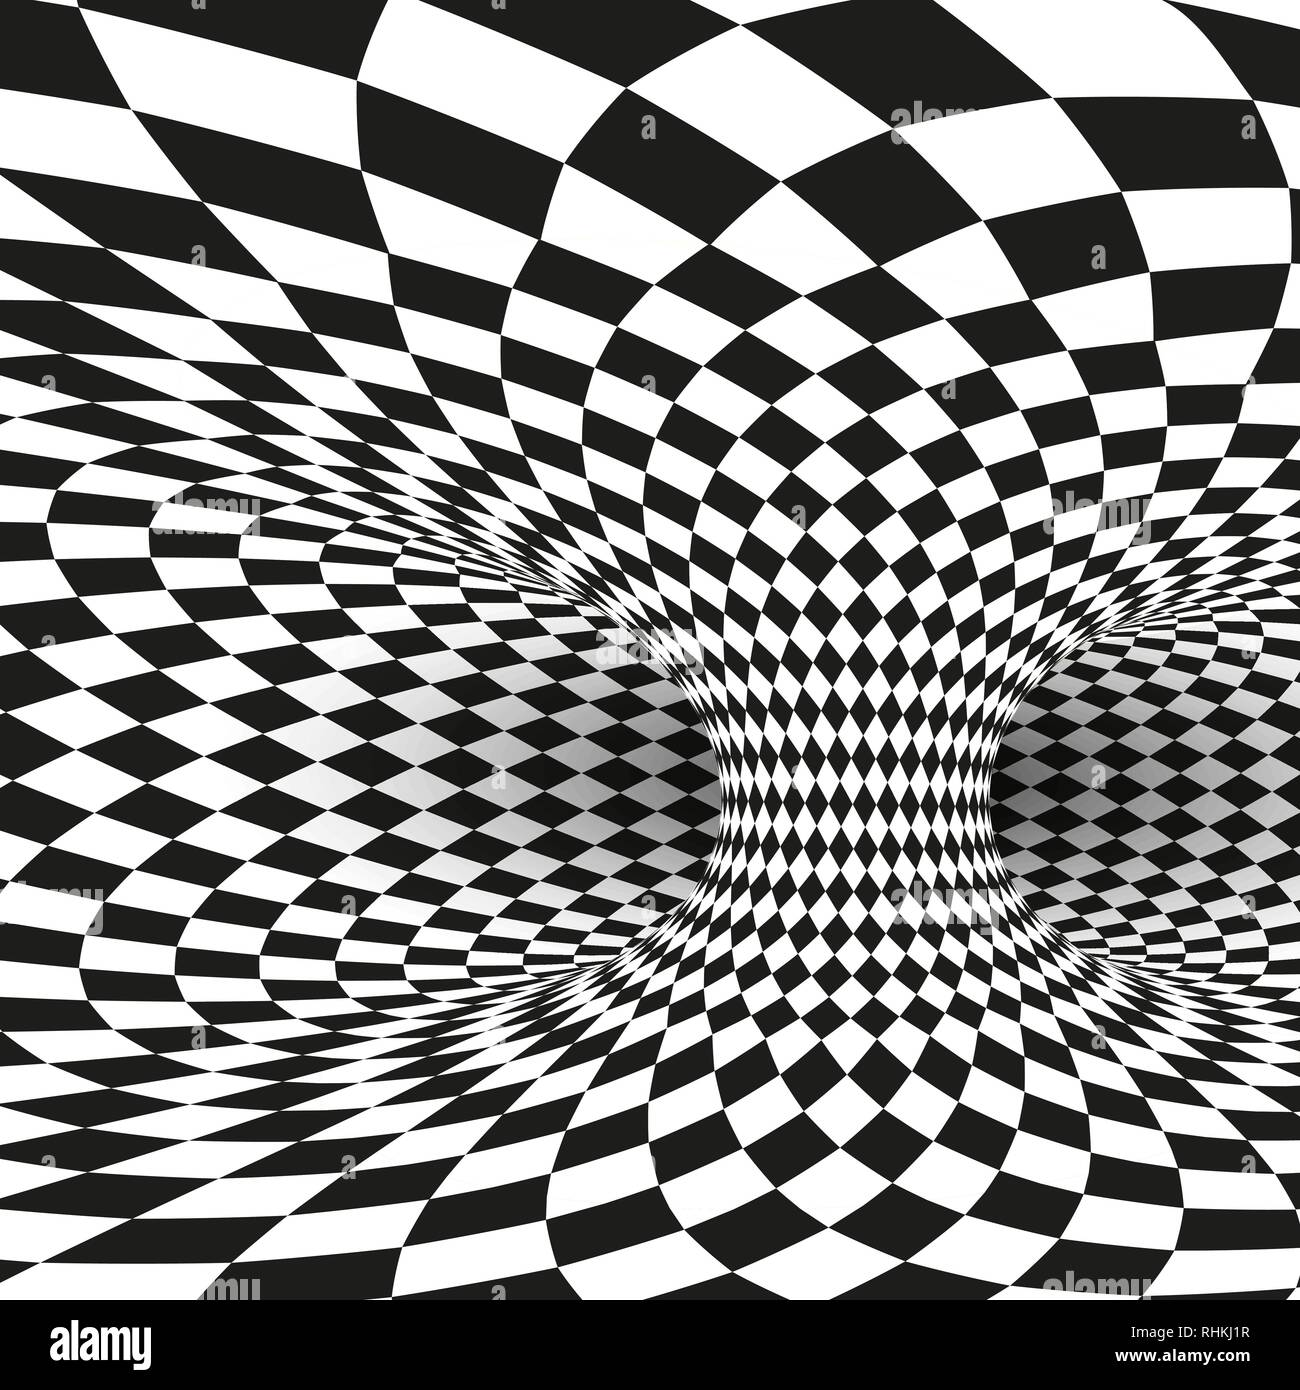 Geometric Square Black and White Optical Illusion. Abstract Wormhole Tunnel Distort. Vector Illustration Stock Vector